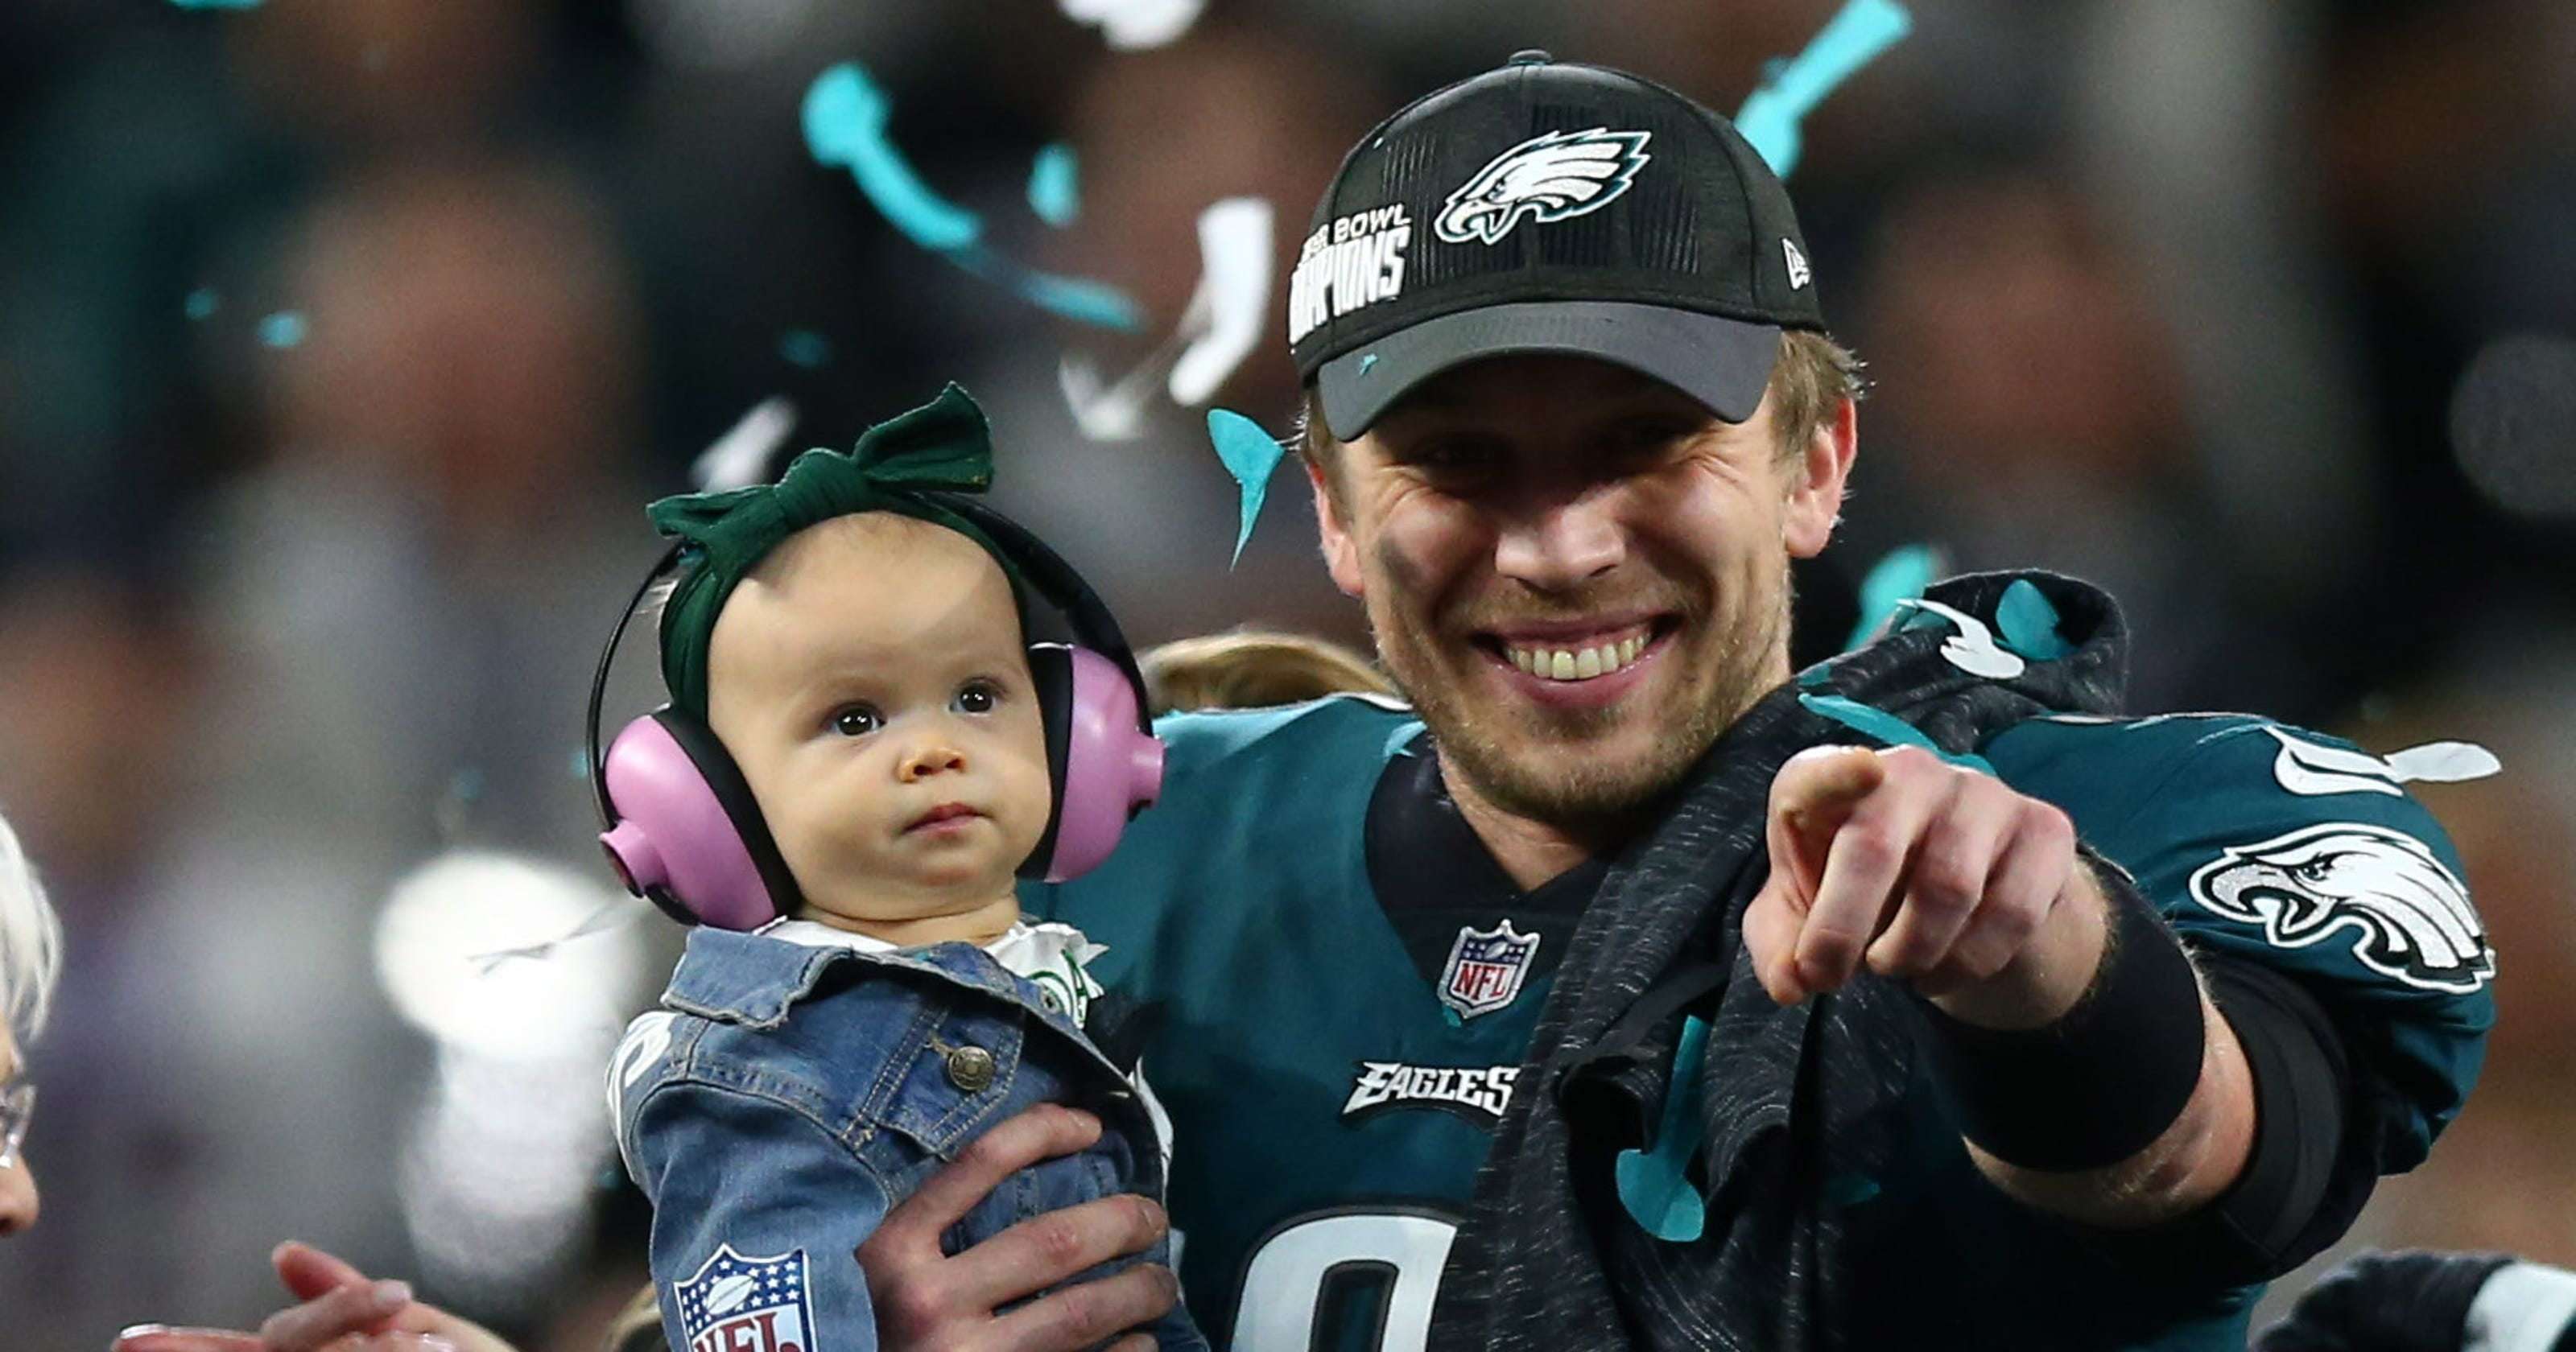 cd456fadabb Nick Foles, Super Bowl 2018 MVP, defies doubters with title for Eagles